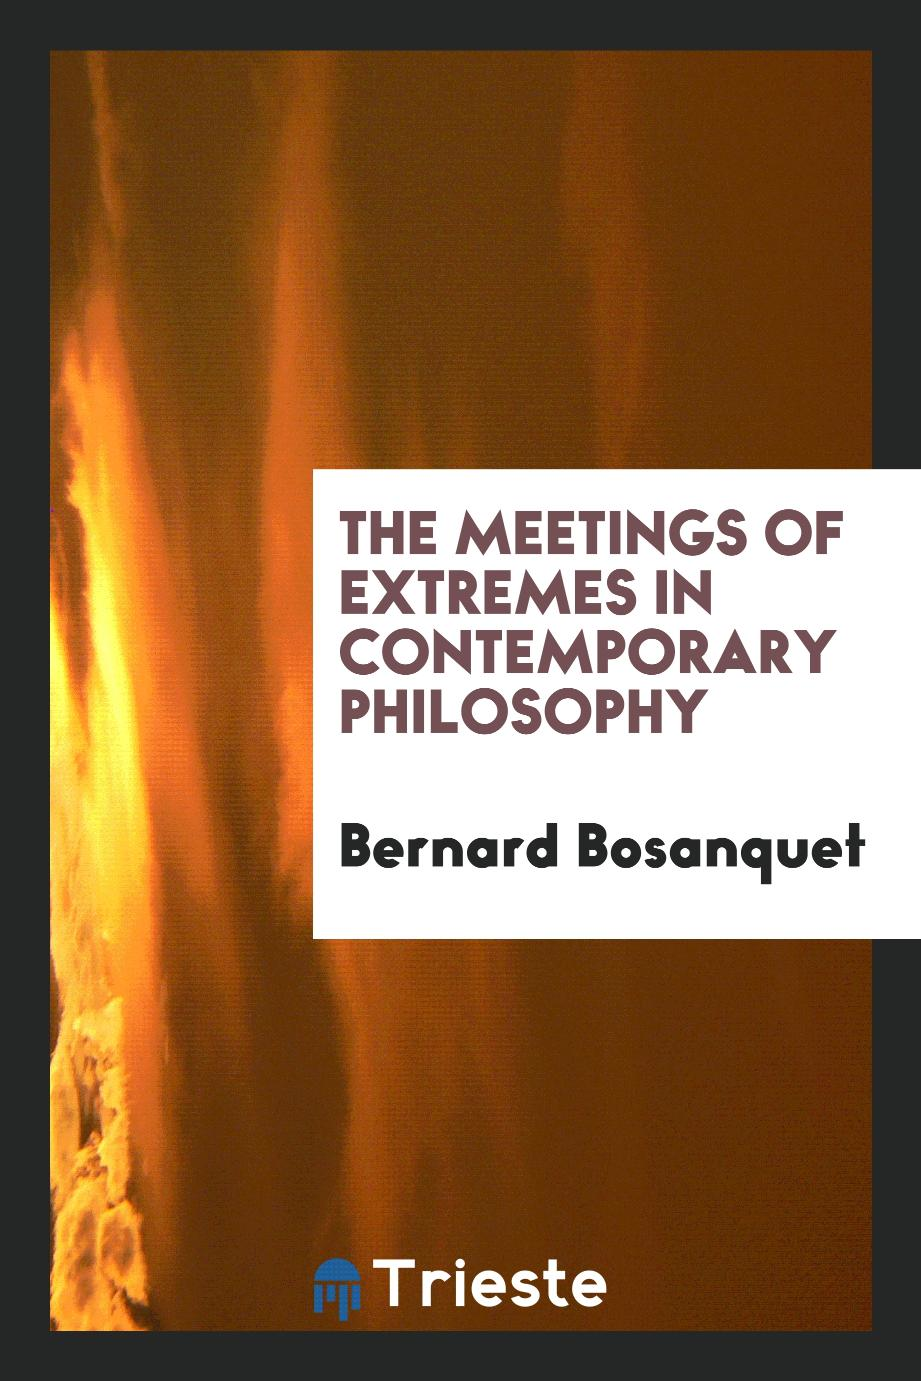 The meetings of extremes in contemporary philosophy